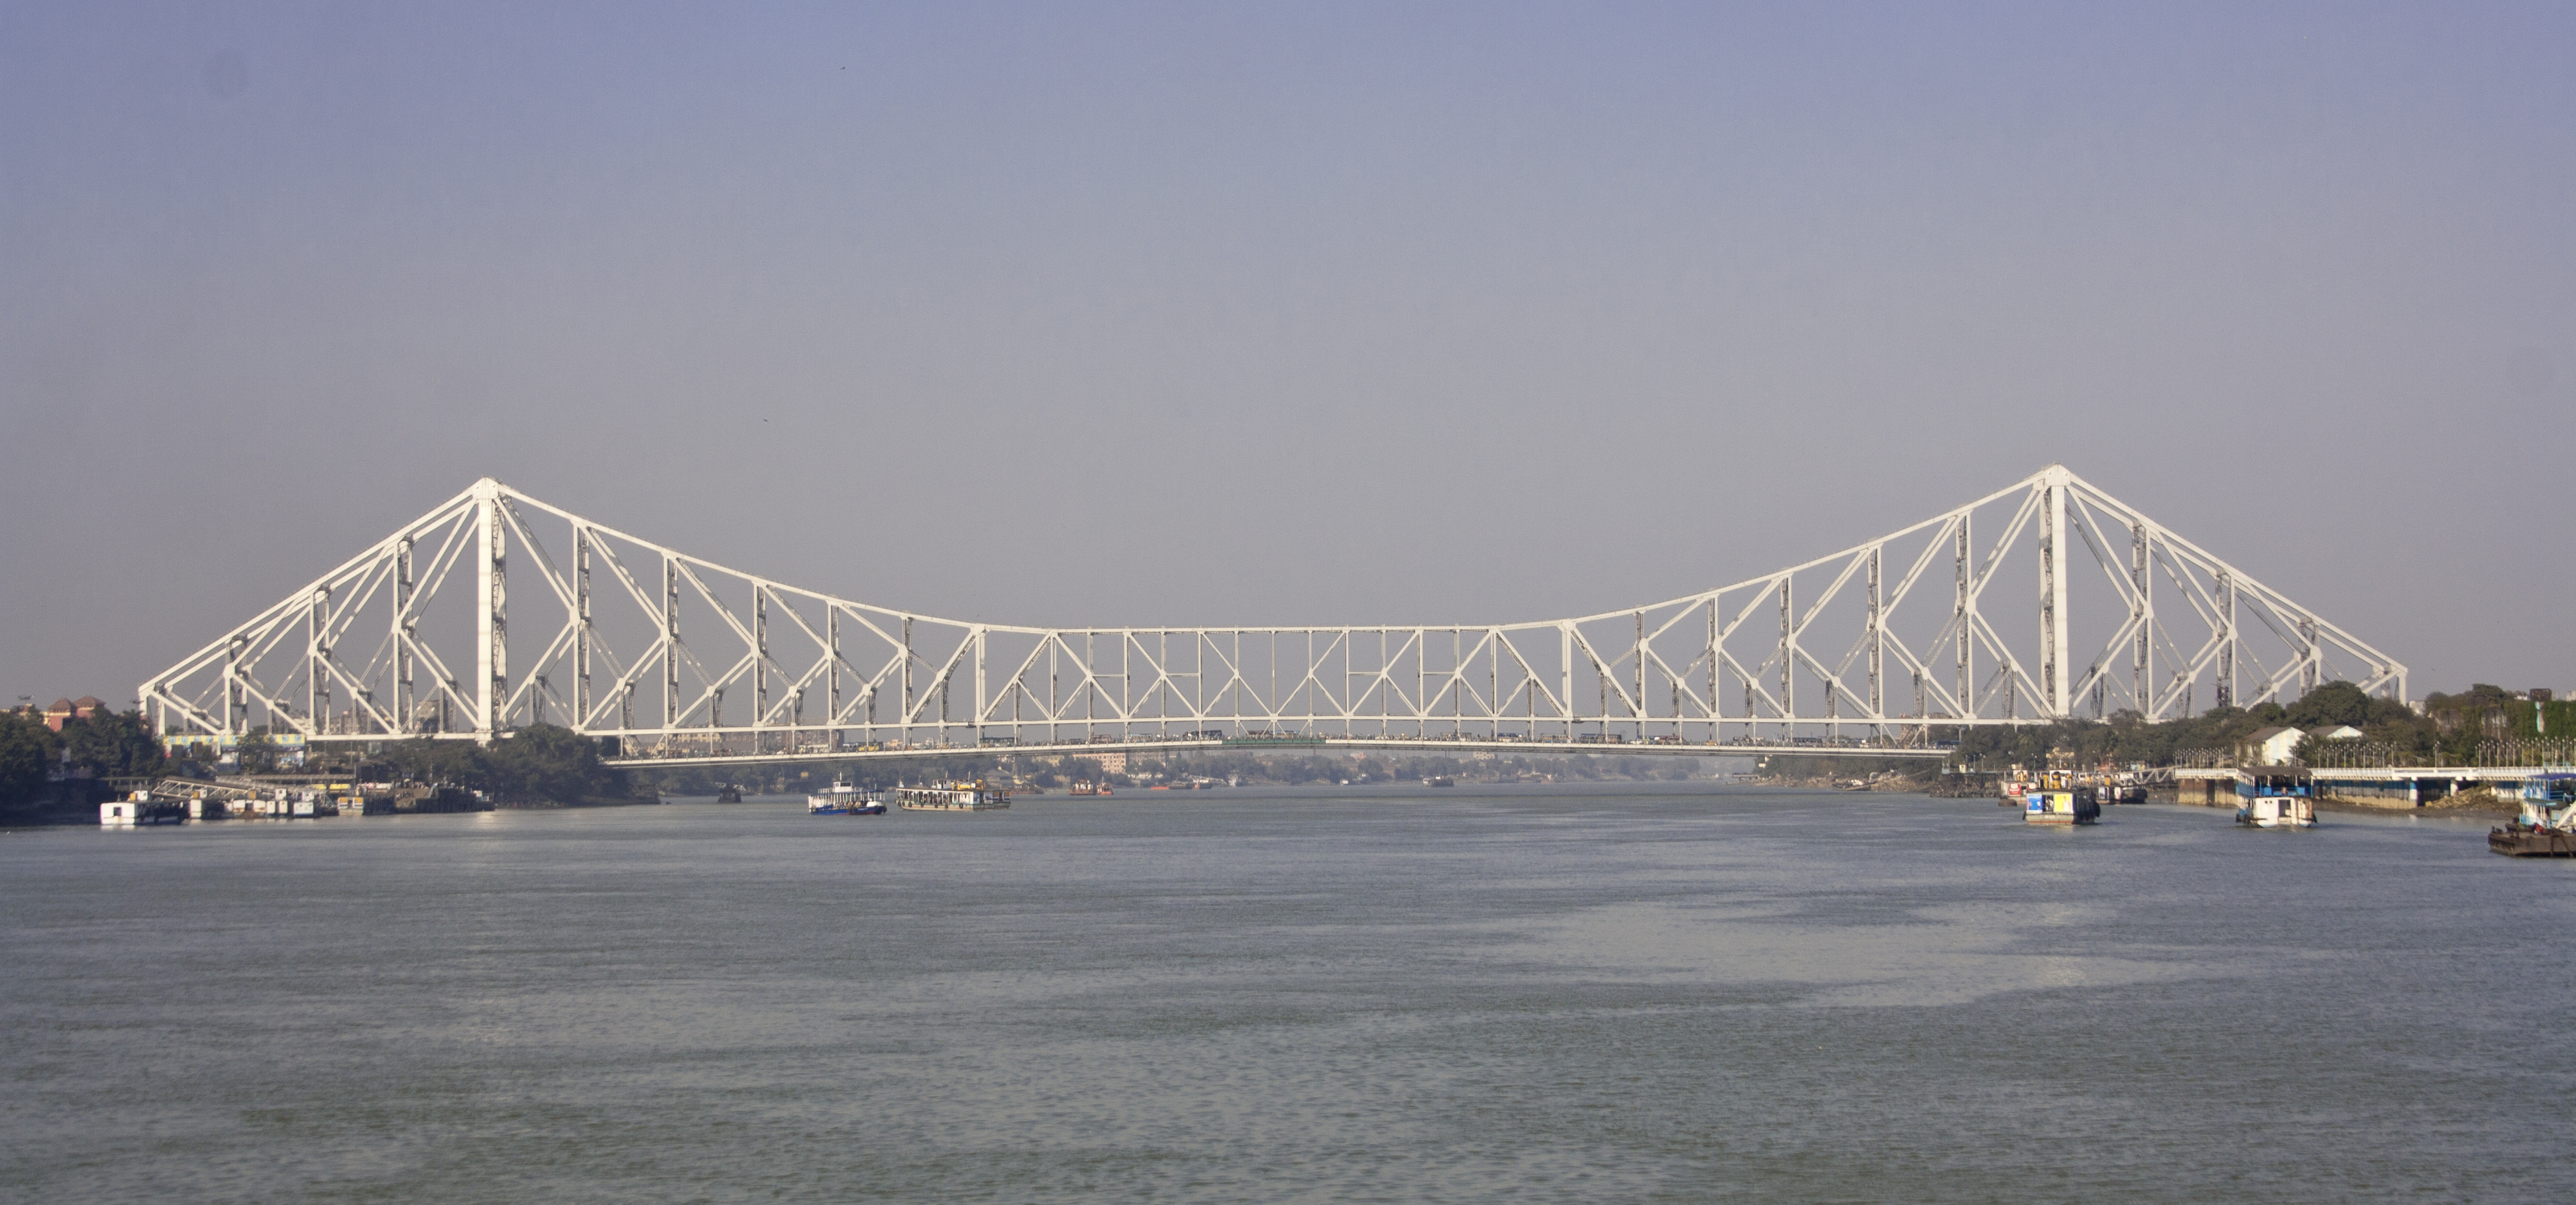 File:Howrah Bridge view 01.jpg - Wikimedia Commons